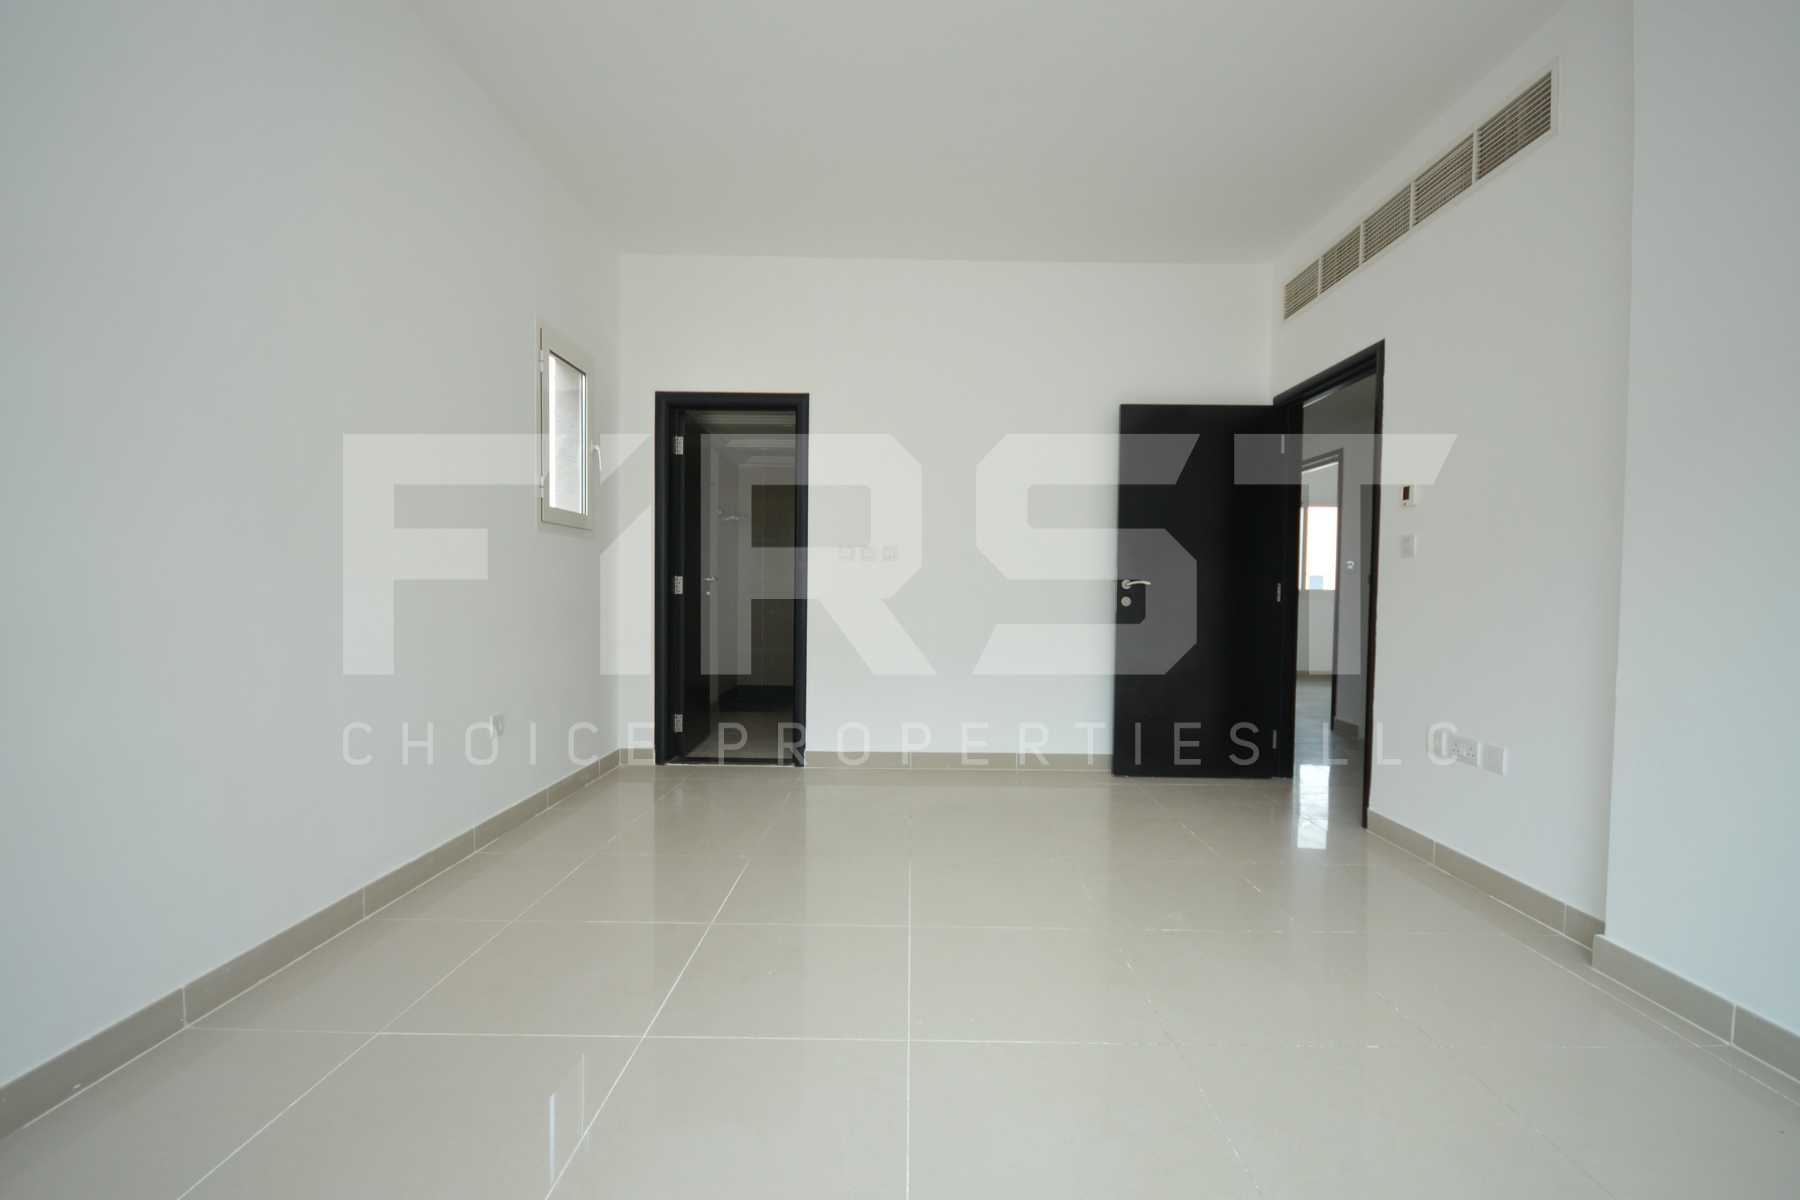 Internal Photo of 4 Bedroom Villa in Al Reef Villas Al Reef Abu Dhabi UAE 265.5 sq.m 2858 sq.ft (18).jpg